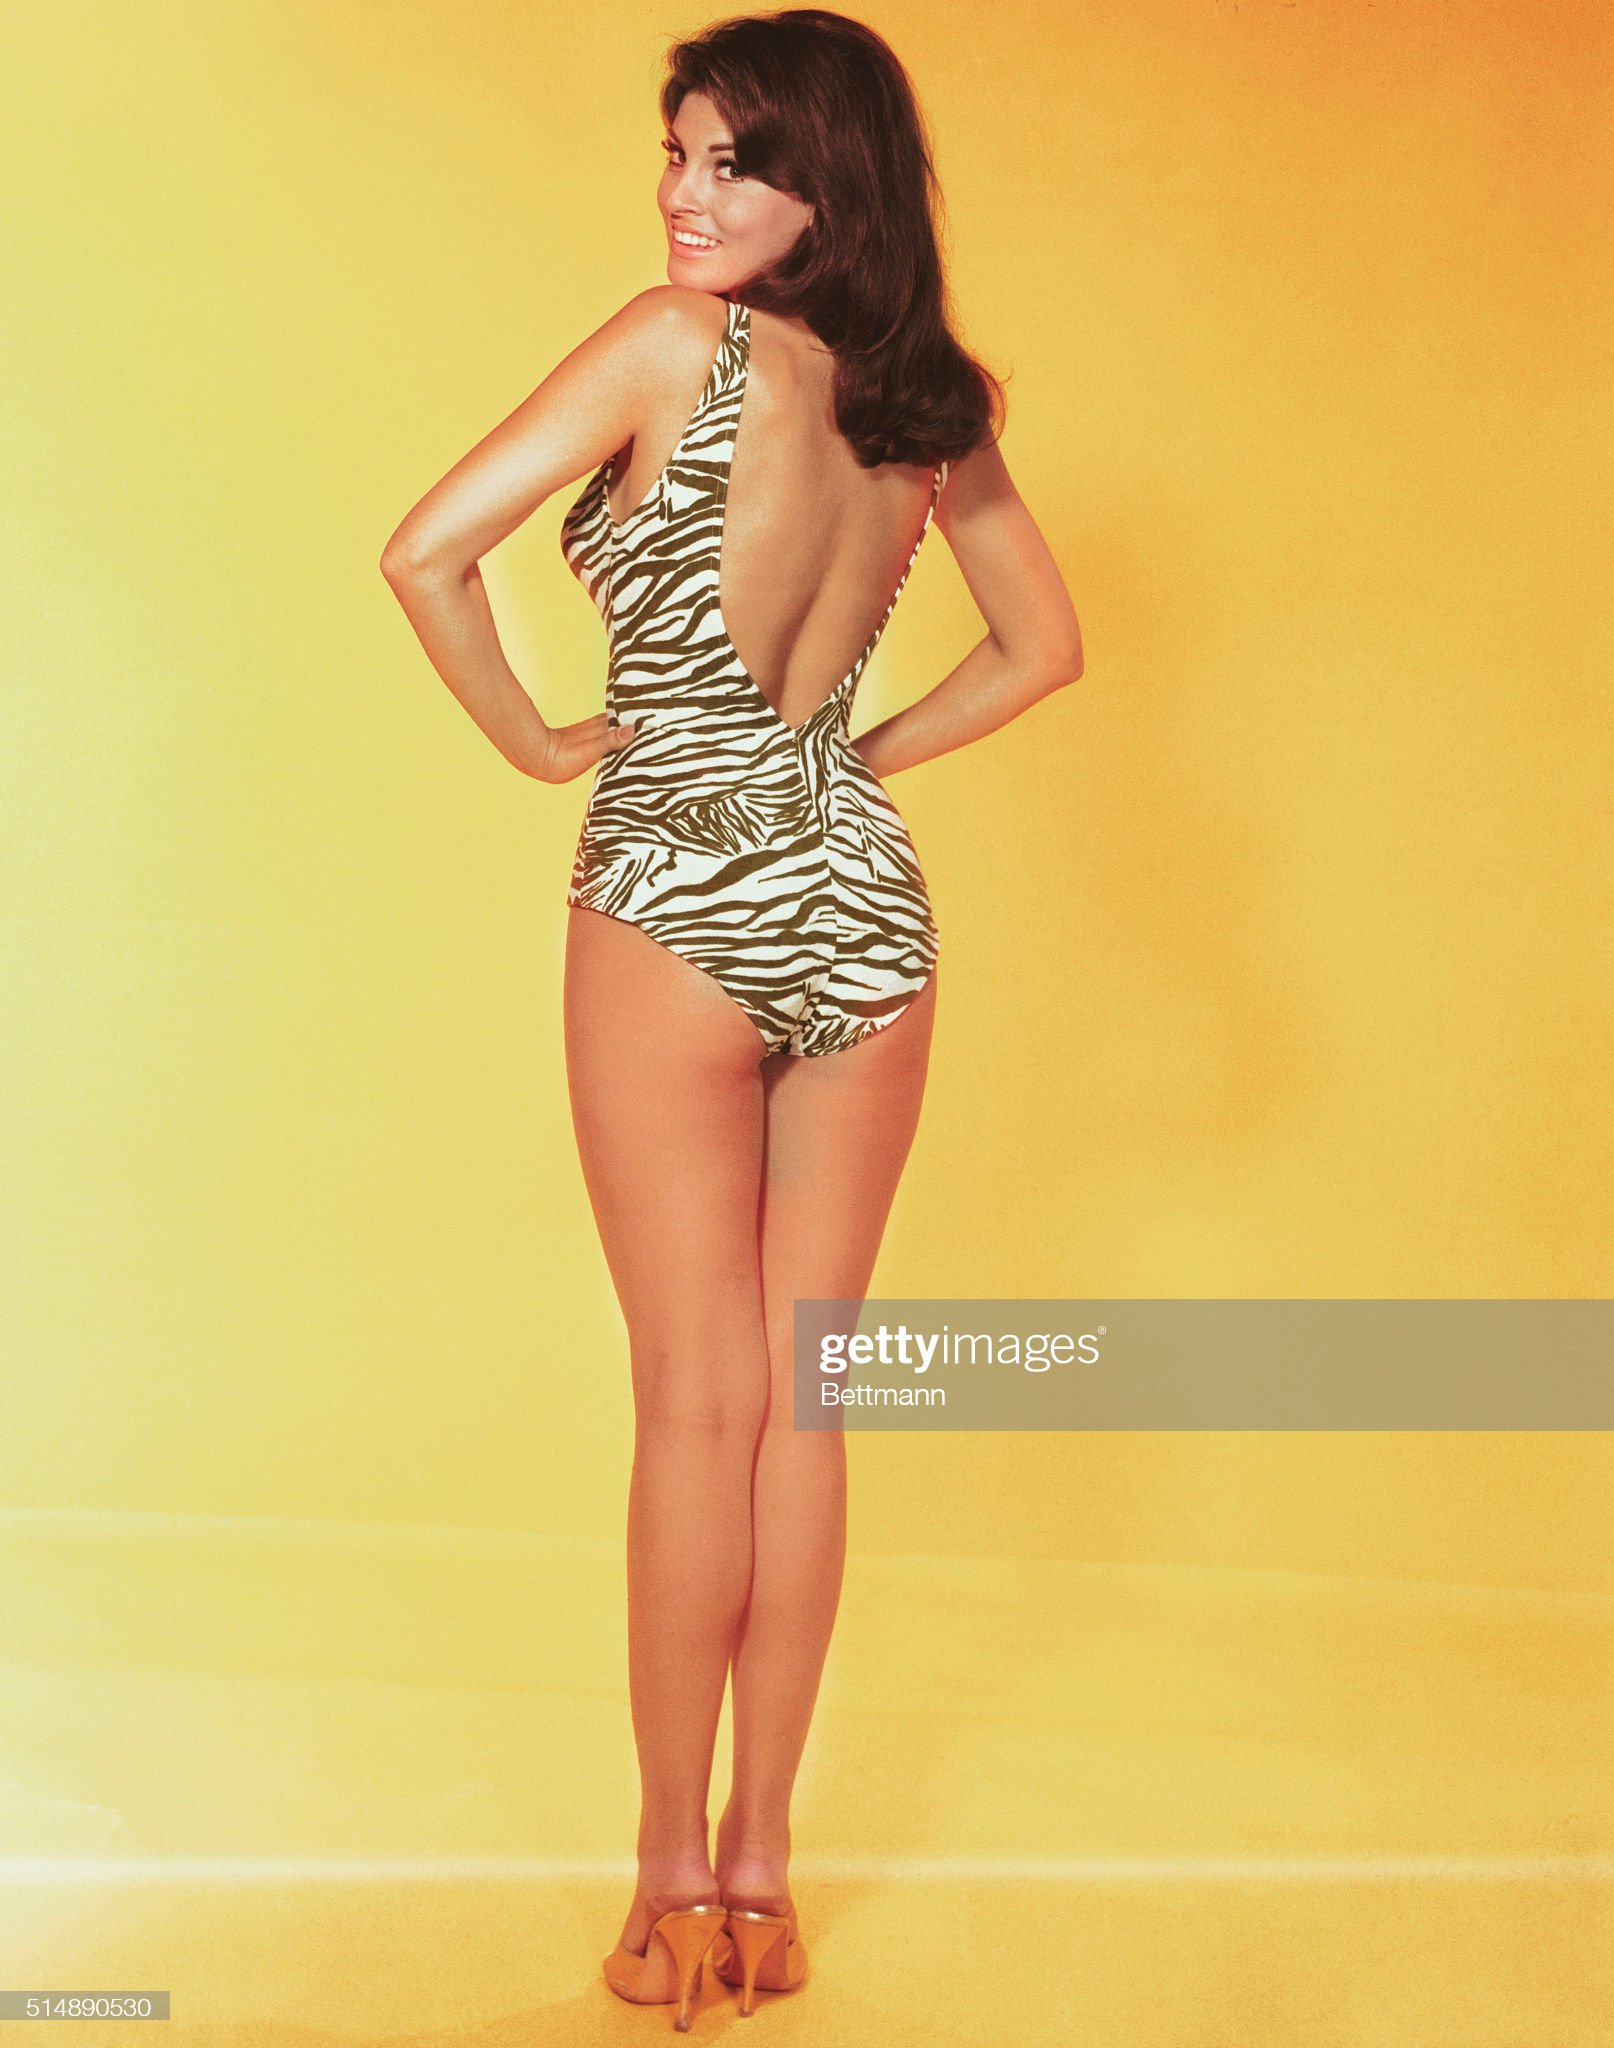 Actress Raquel Welch Modeling Bathing Suit : News Photo